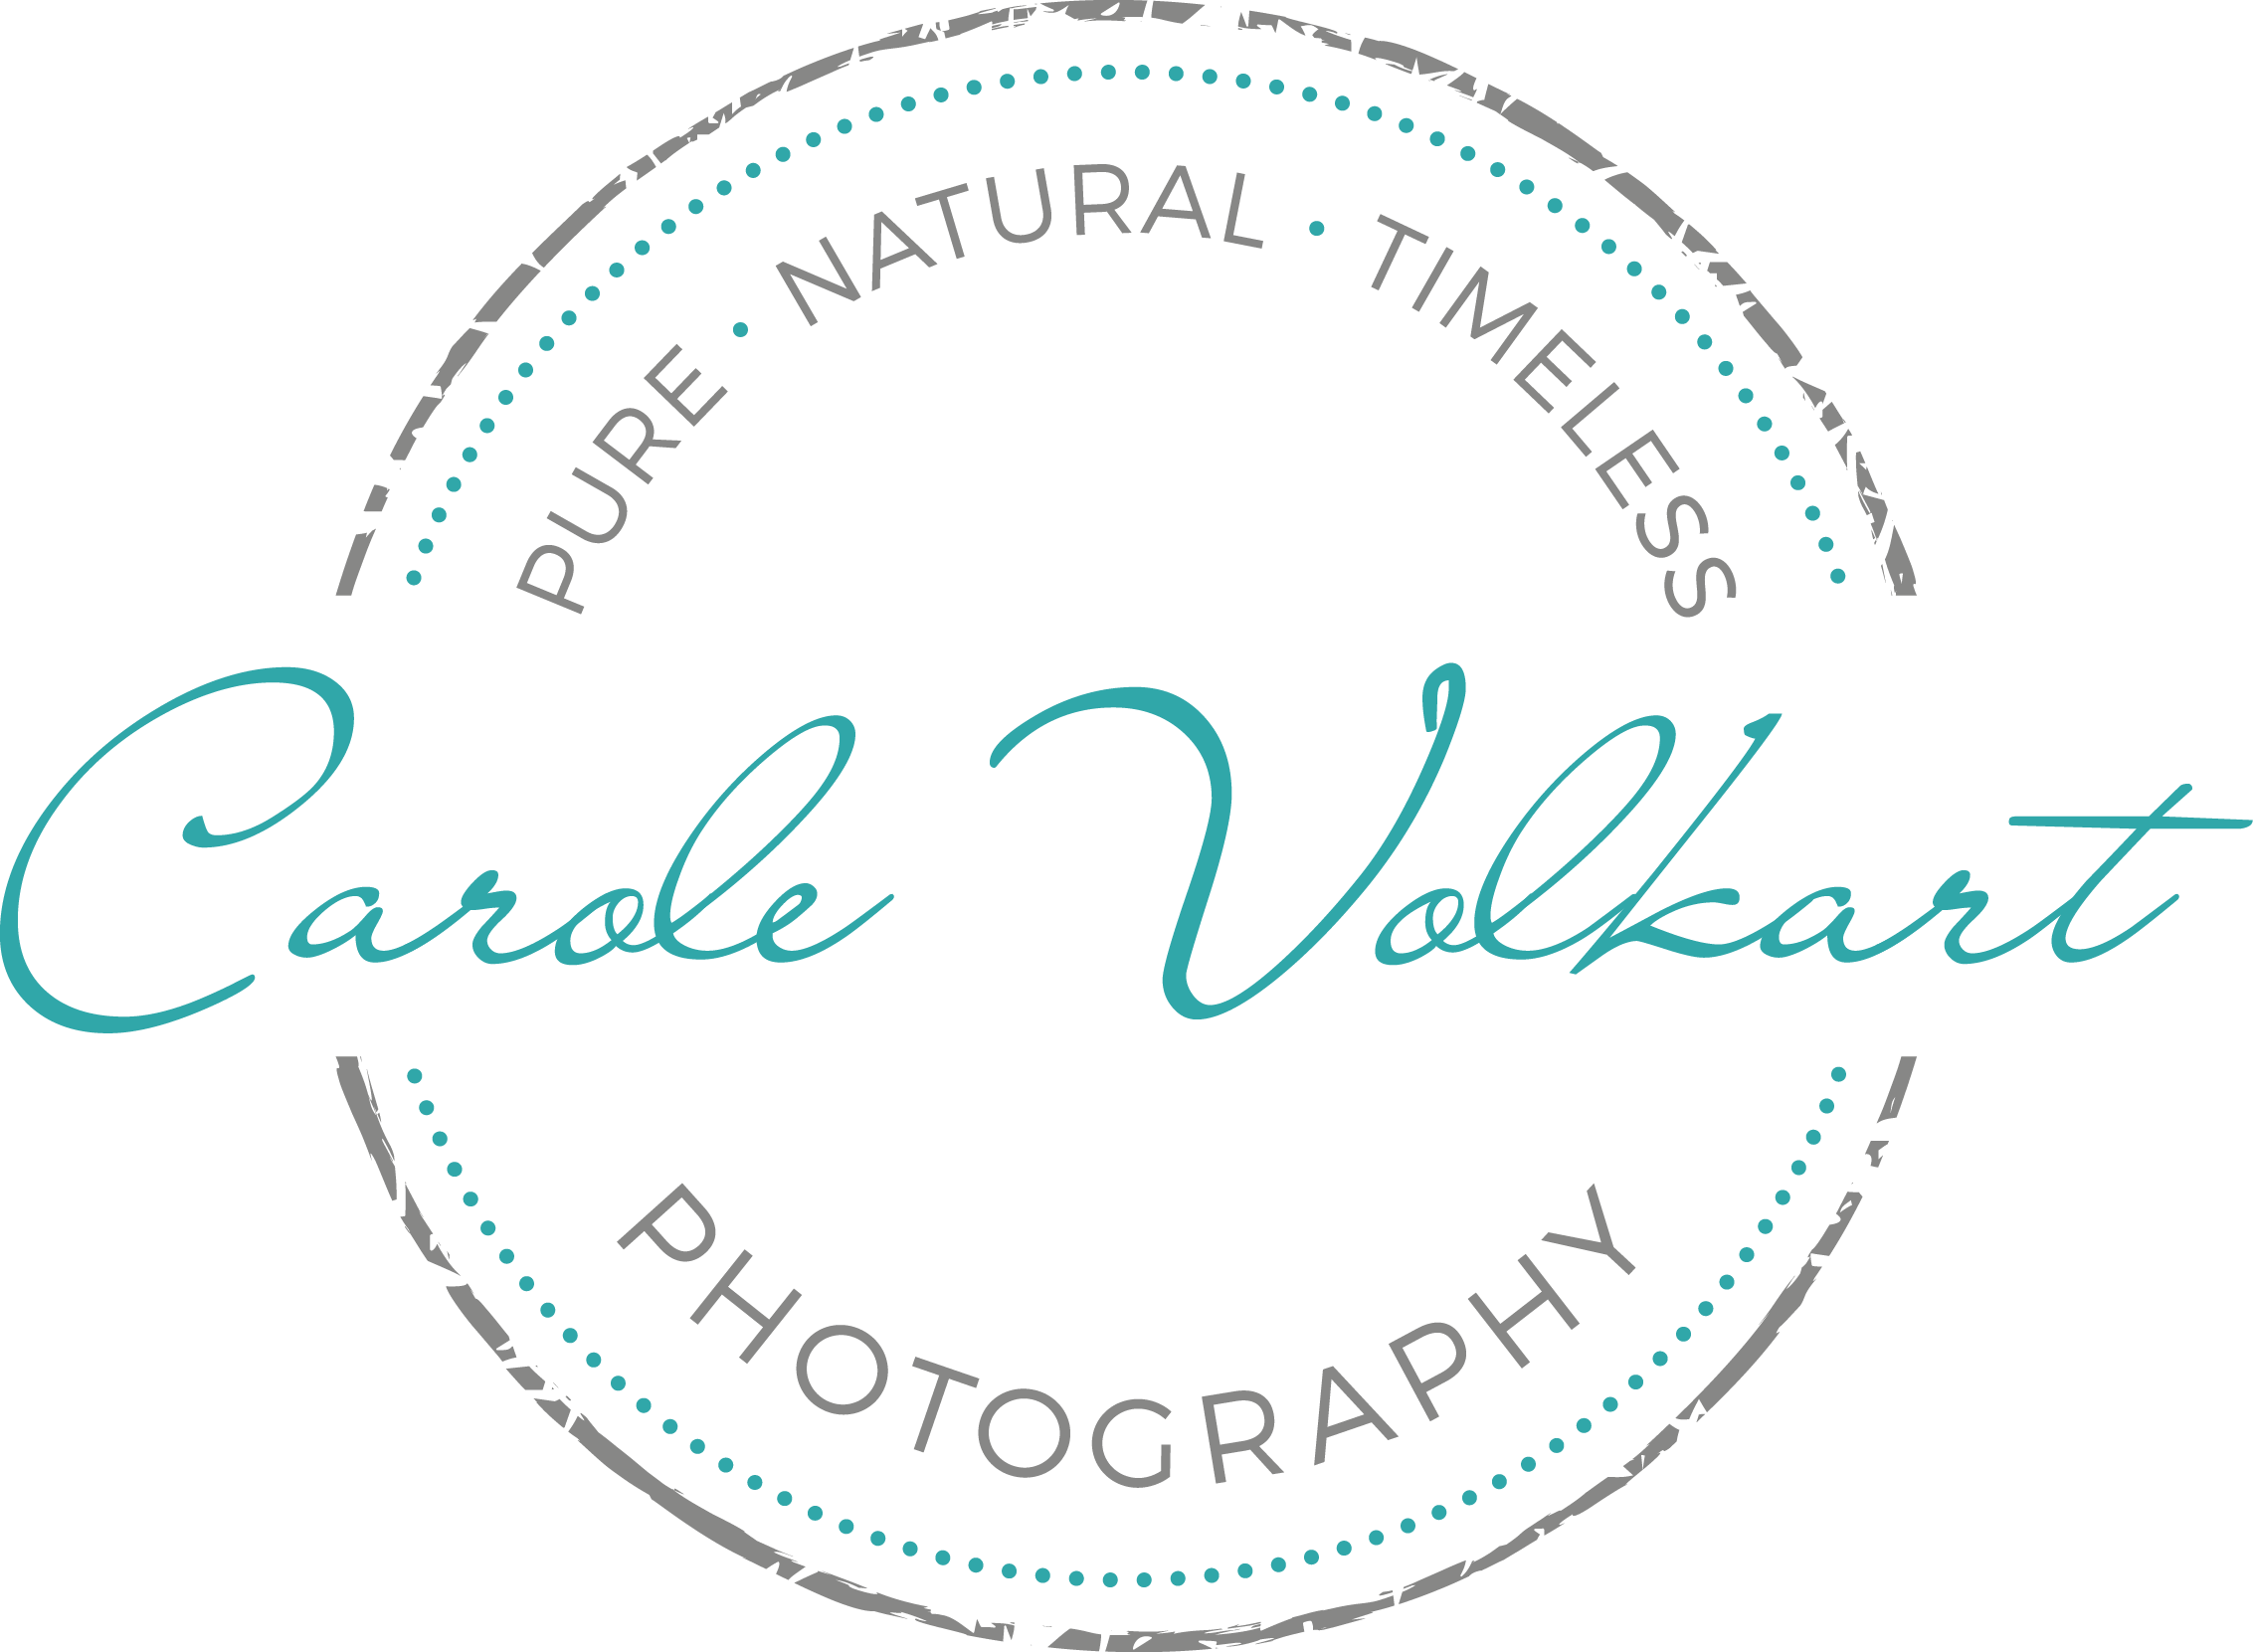 Carole Volkart Photography